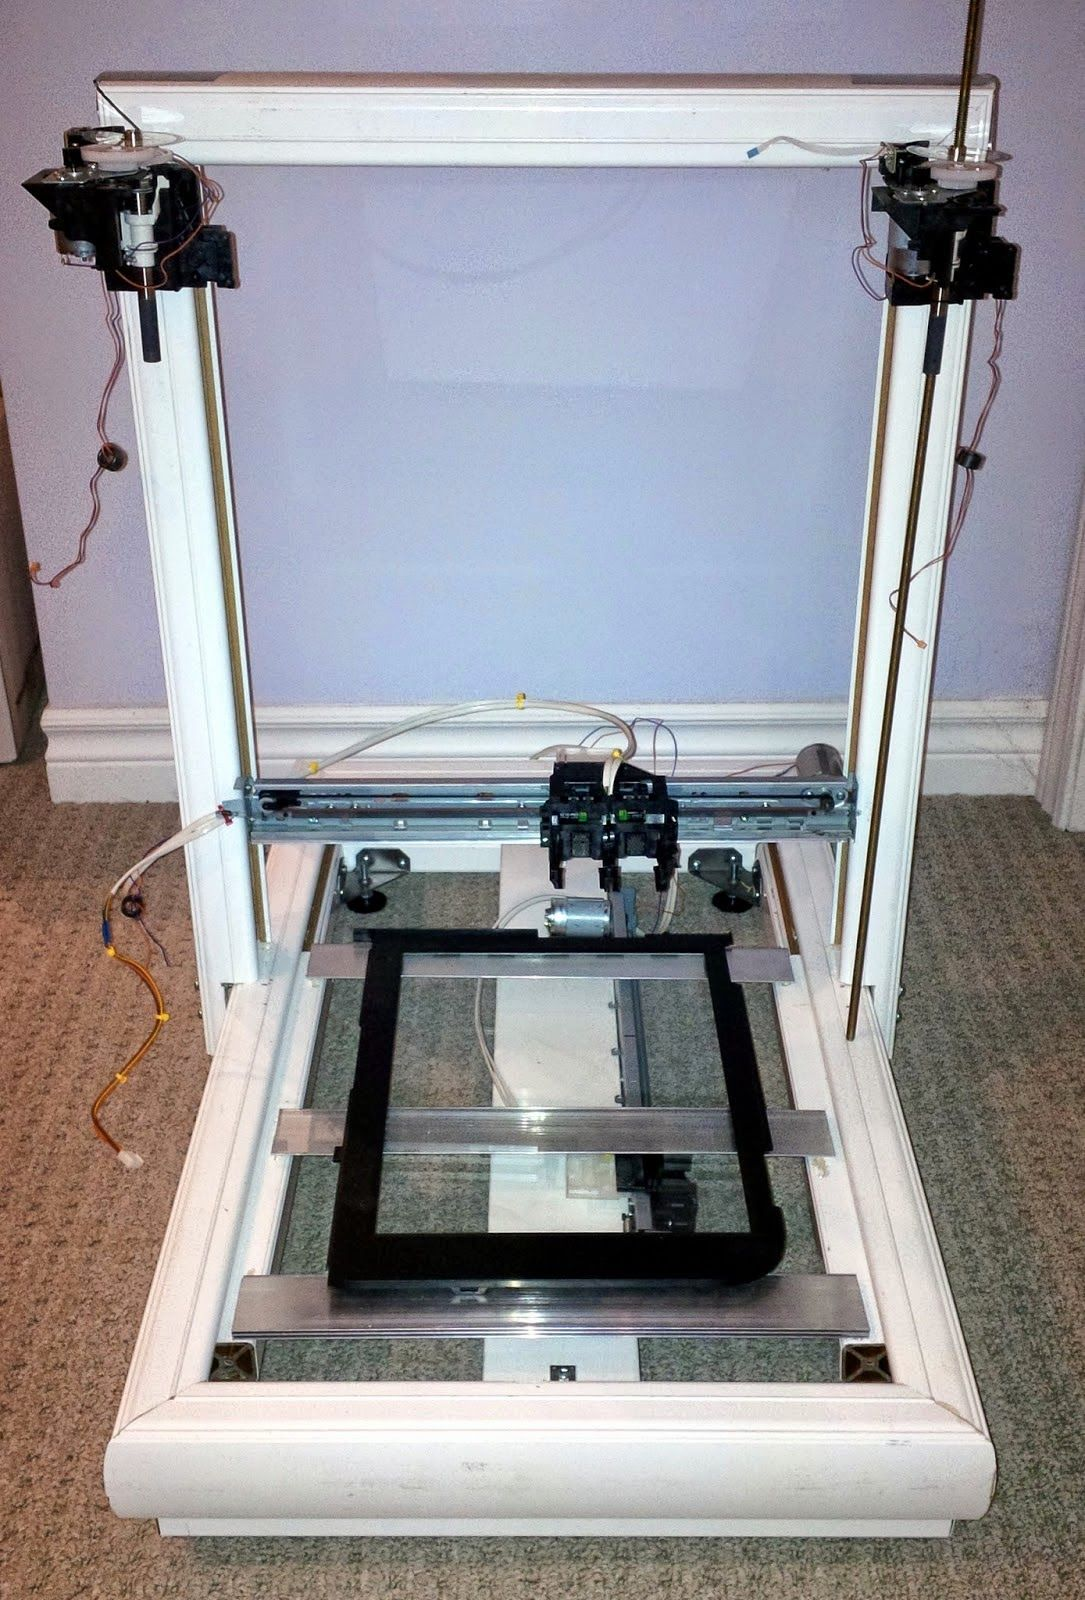 DIY 3D Printing RepScrap DIY 3d printer from salvaged